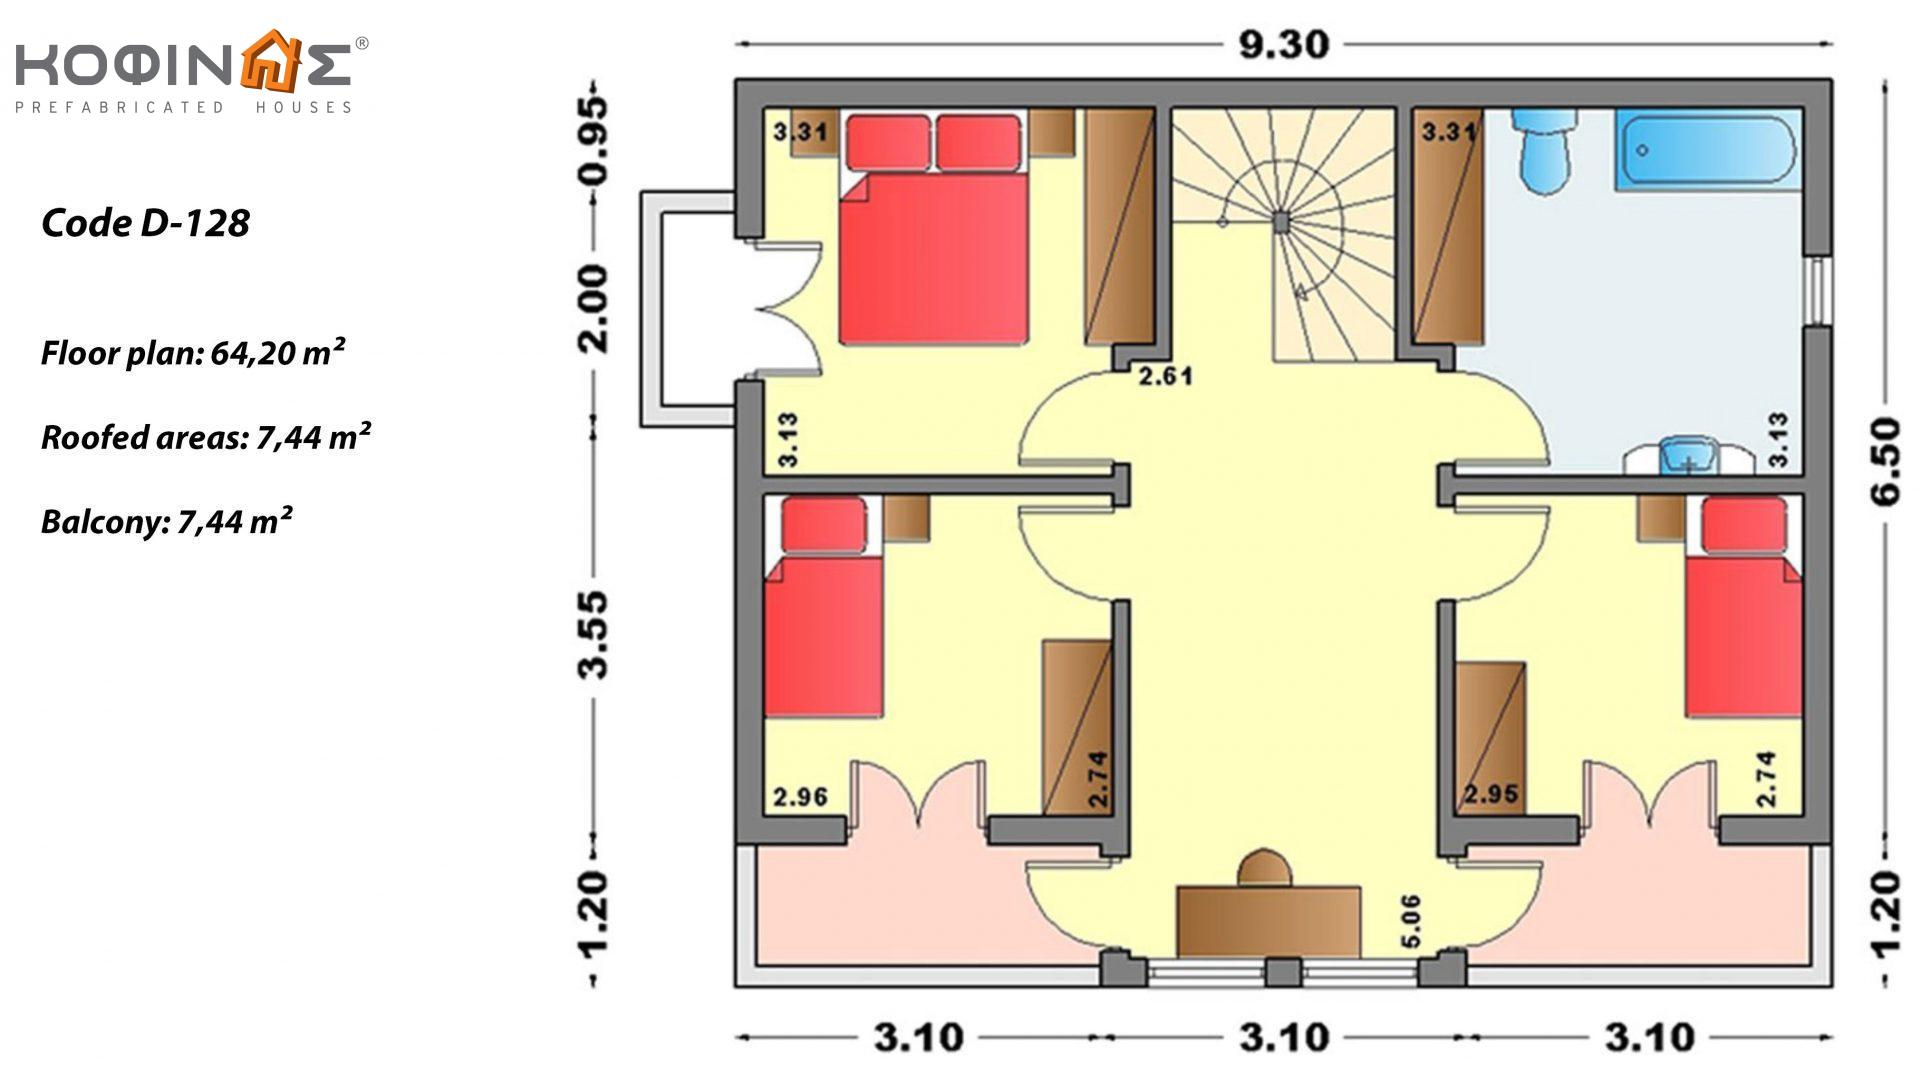 2-story house D-128, total surface of 128,40 m²,roofed areas 16.48 m²,balconies 7.44 m²